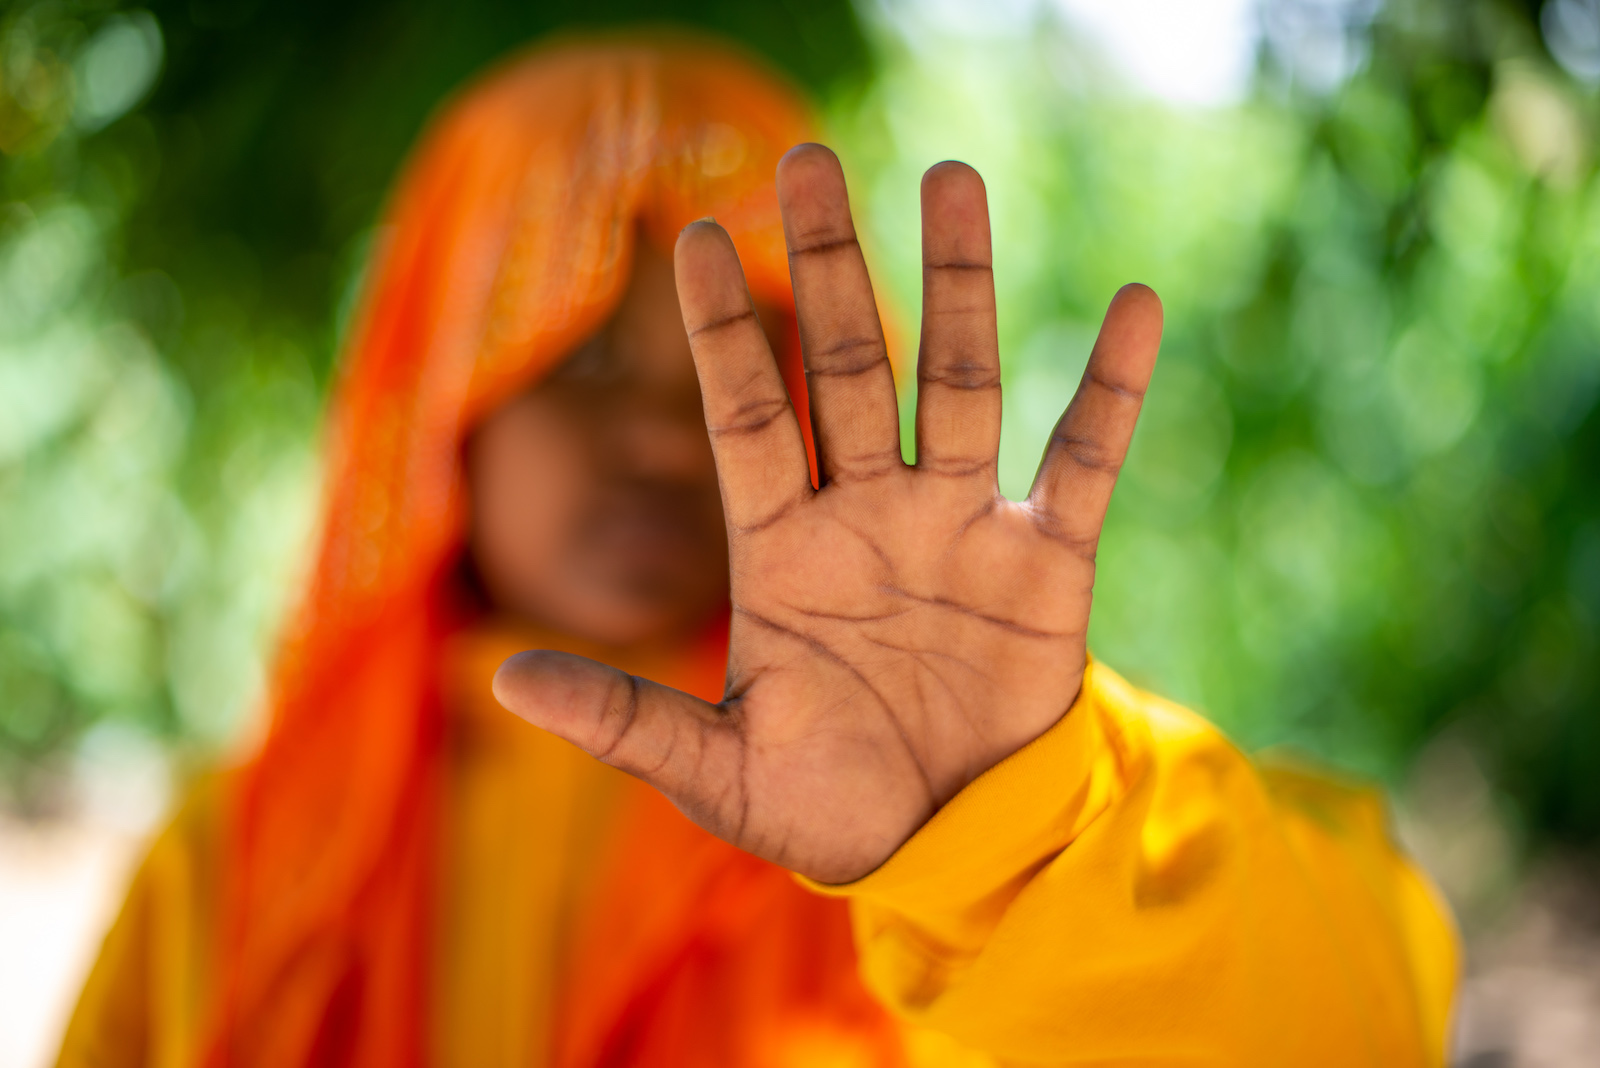 A girl in orange wearing a head covering holds her hand in front of a camera to block her face.